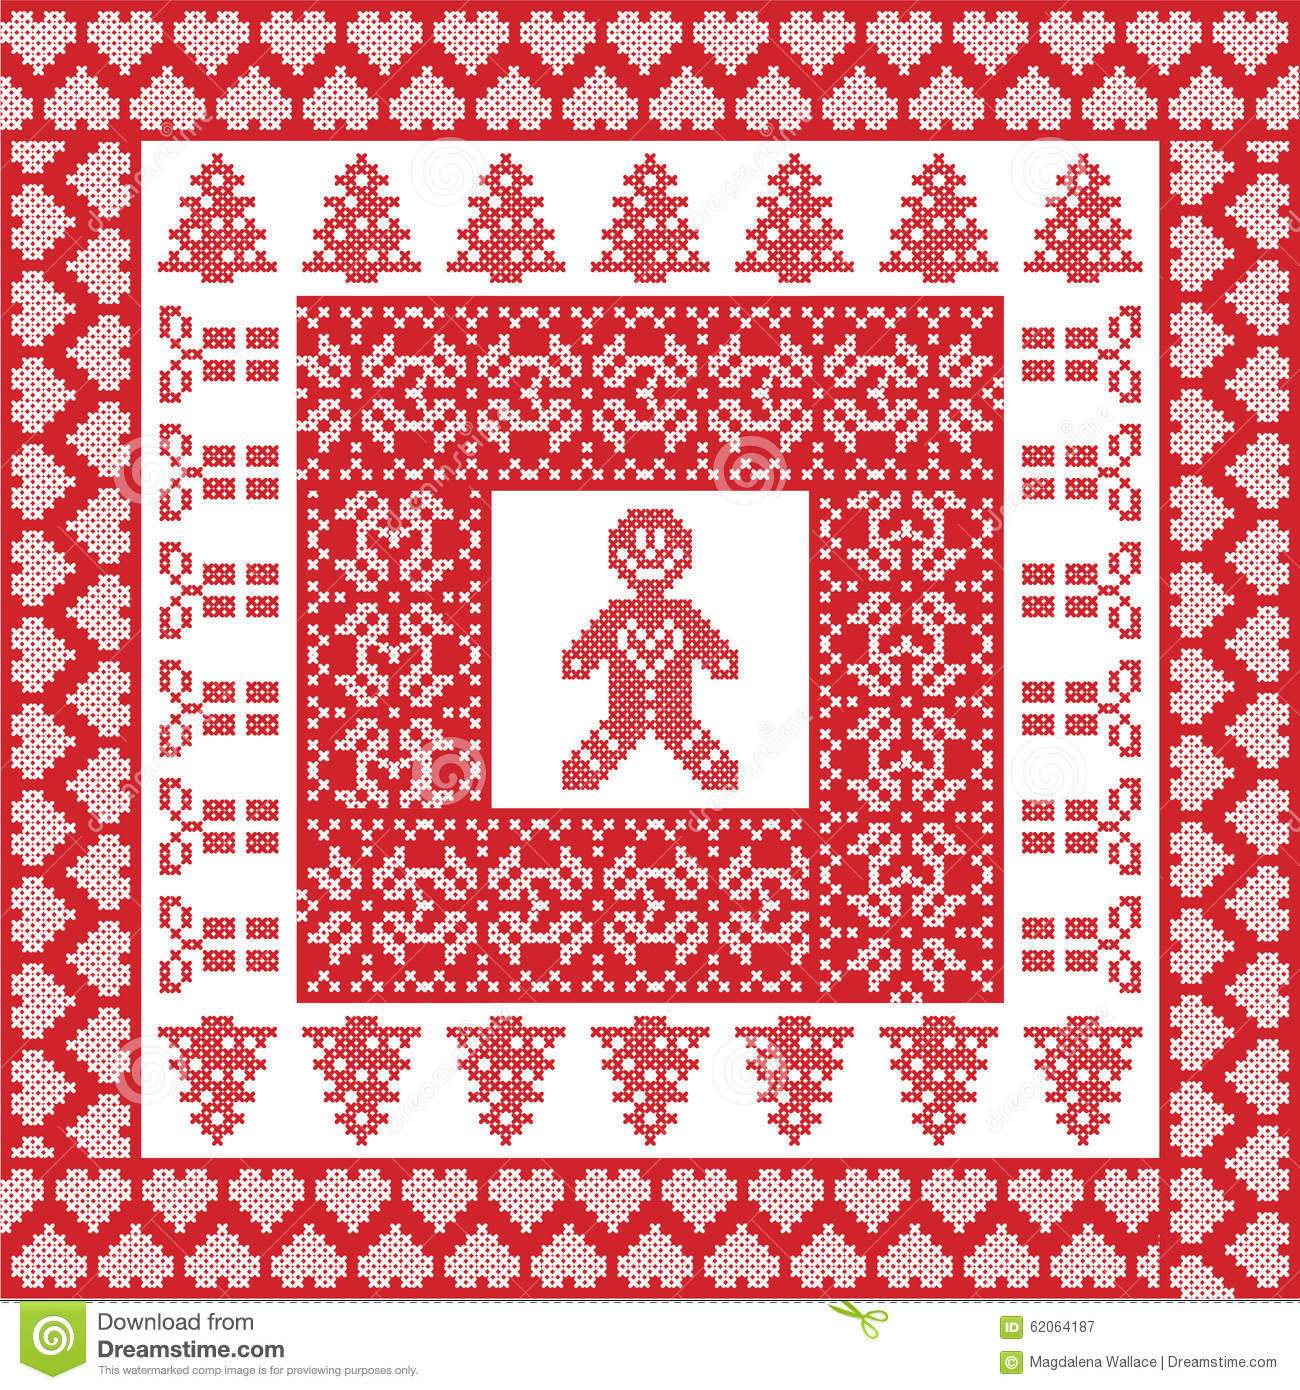 Nordic Knitting Patterns Free : Scandinavian Nordic Winter Cross Stitch, Knitting Christmas Pattern In Square...